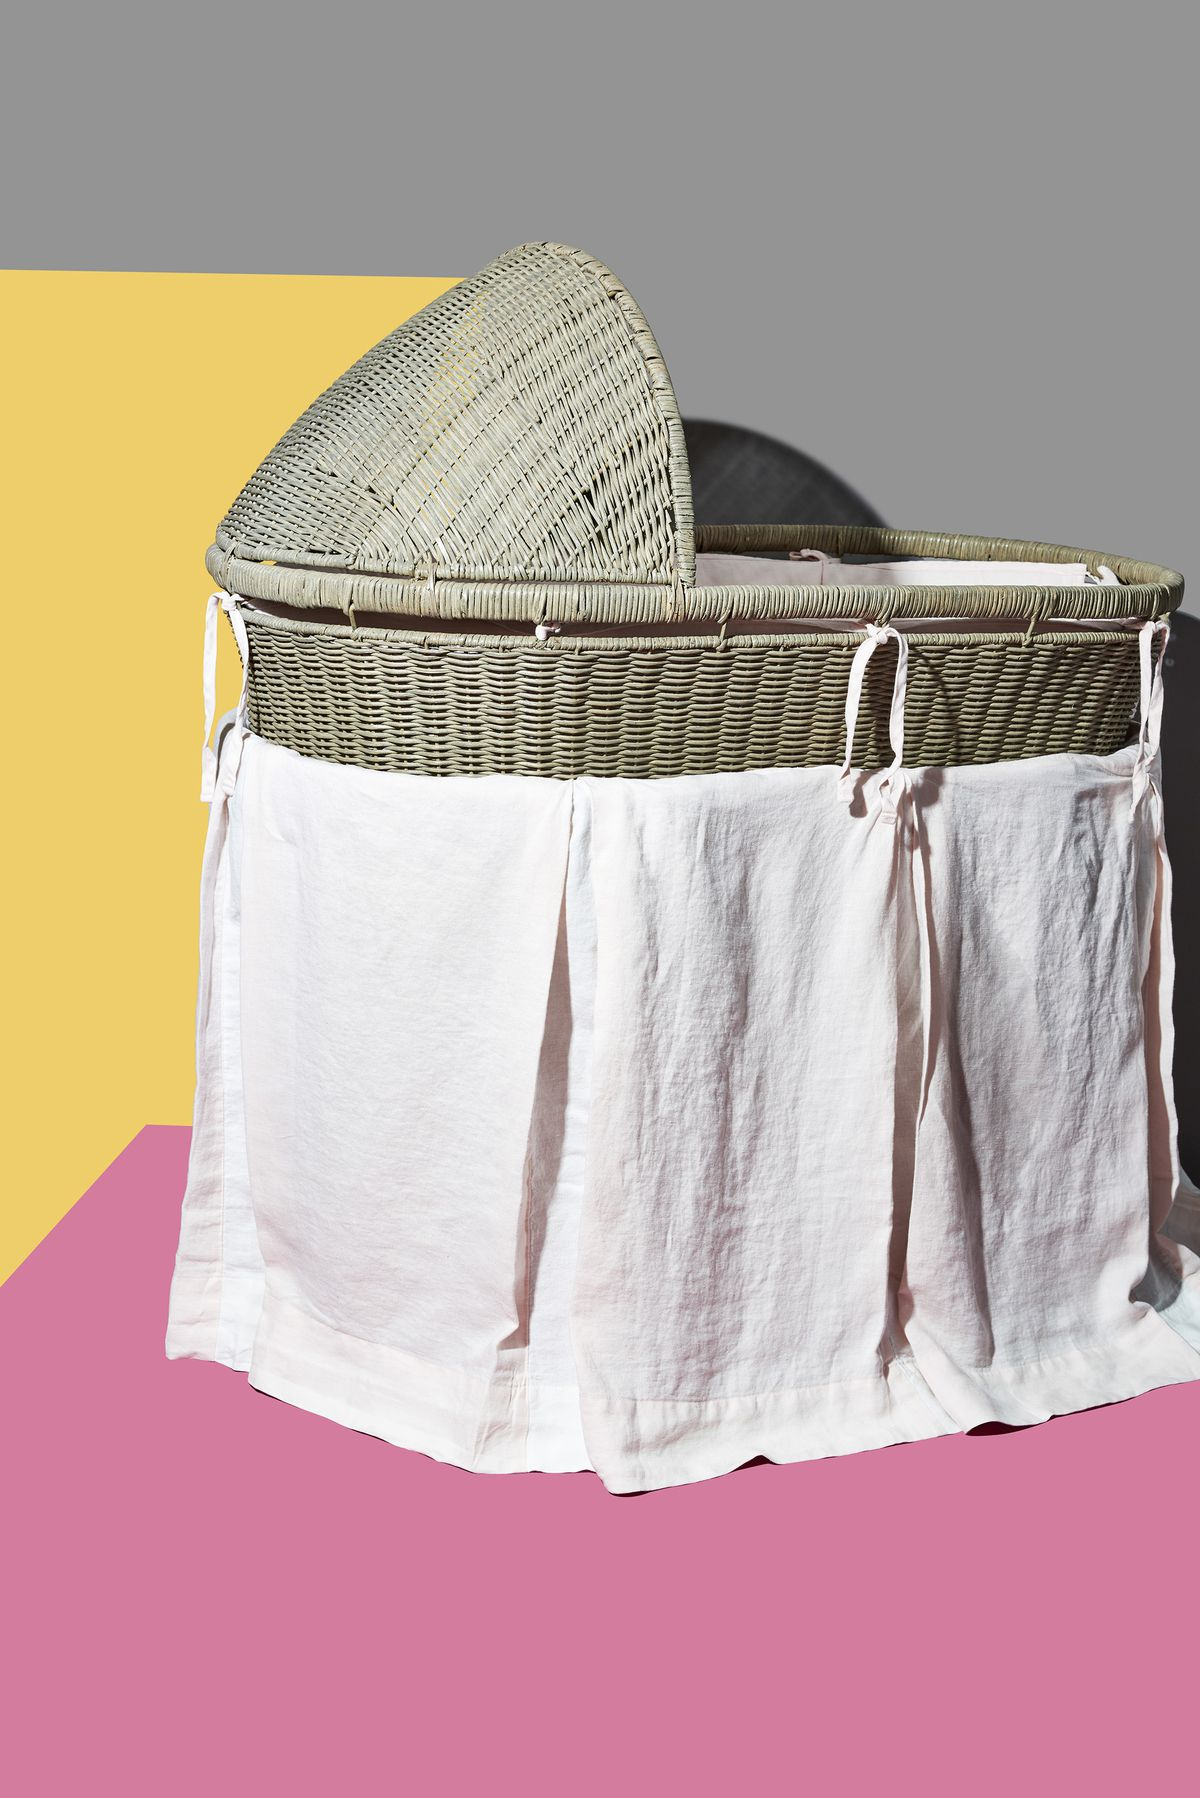 This Rustic Bassinet Fashioned Out Of Woven Wicker Sits On A Base That Includes Storage Shelf Hidden By Washed Linen Skirt Snap Up The